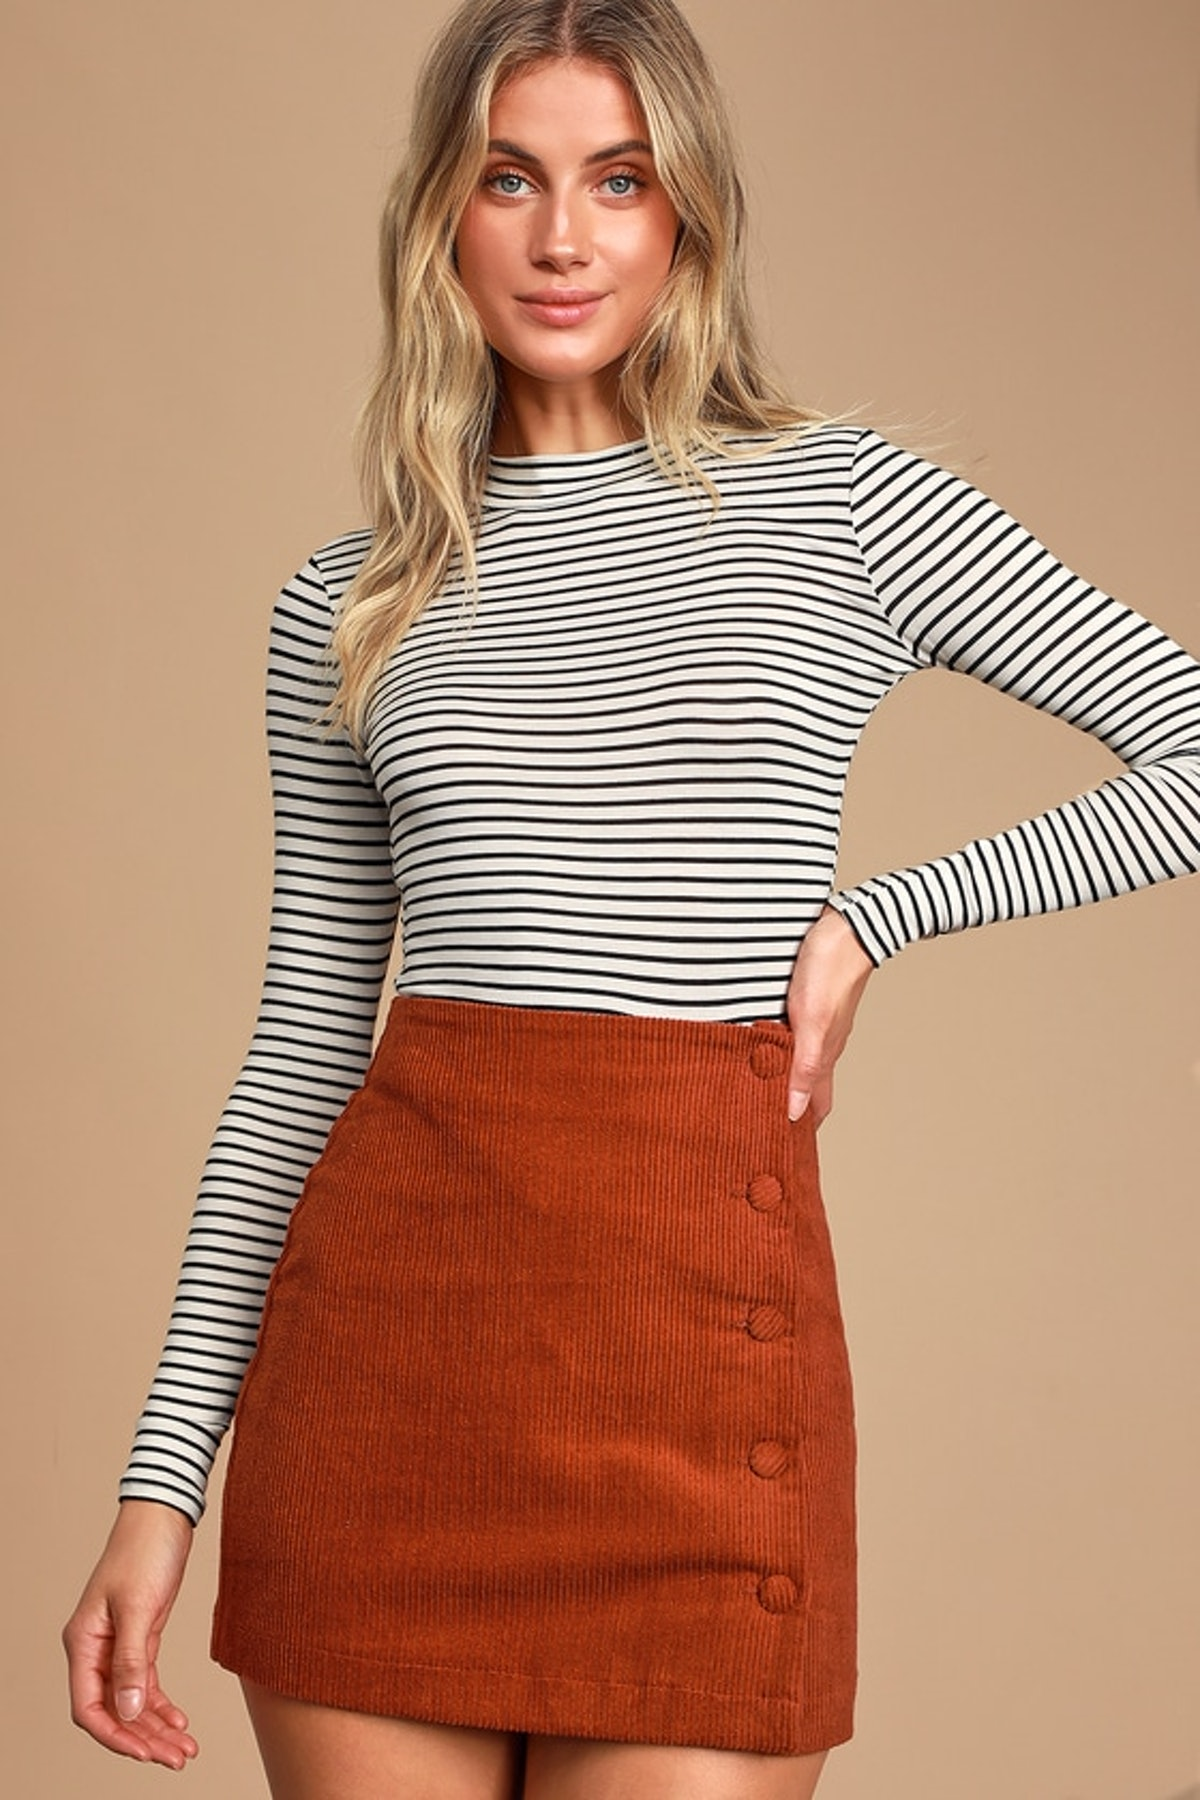 Anything is Posh-ible White Striped Top